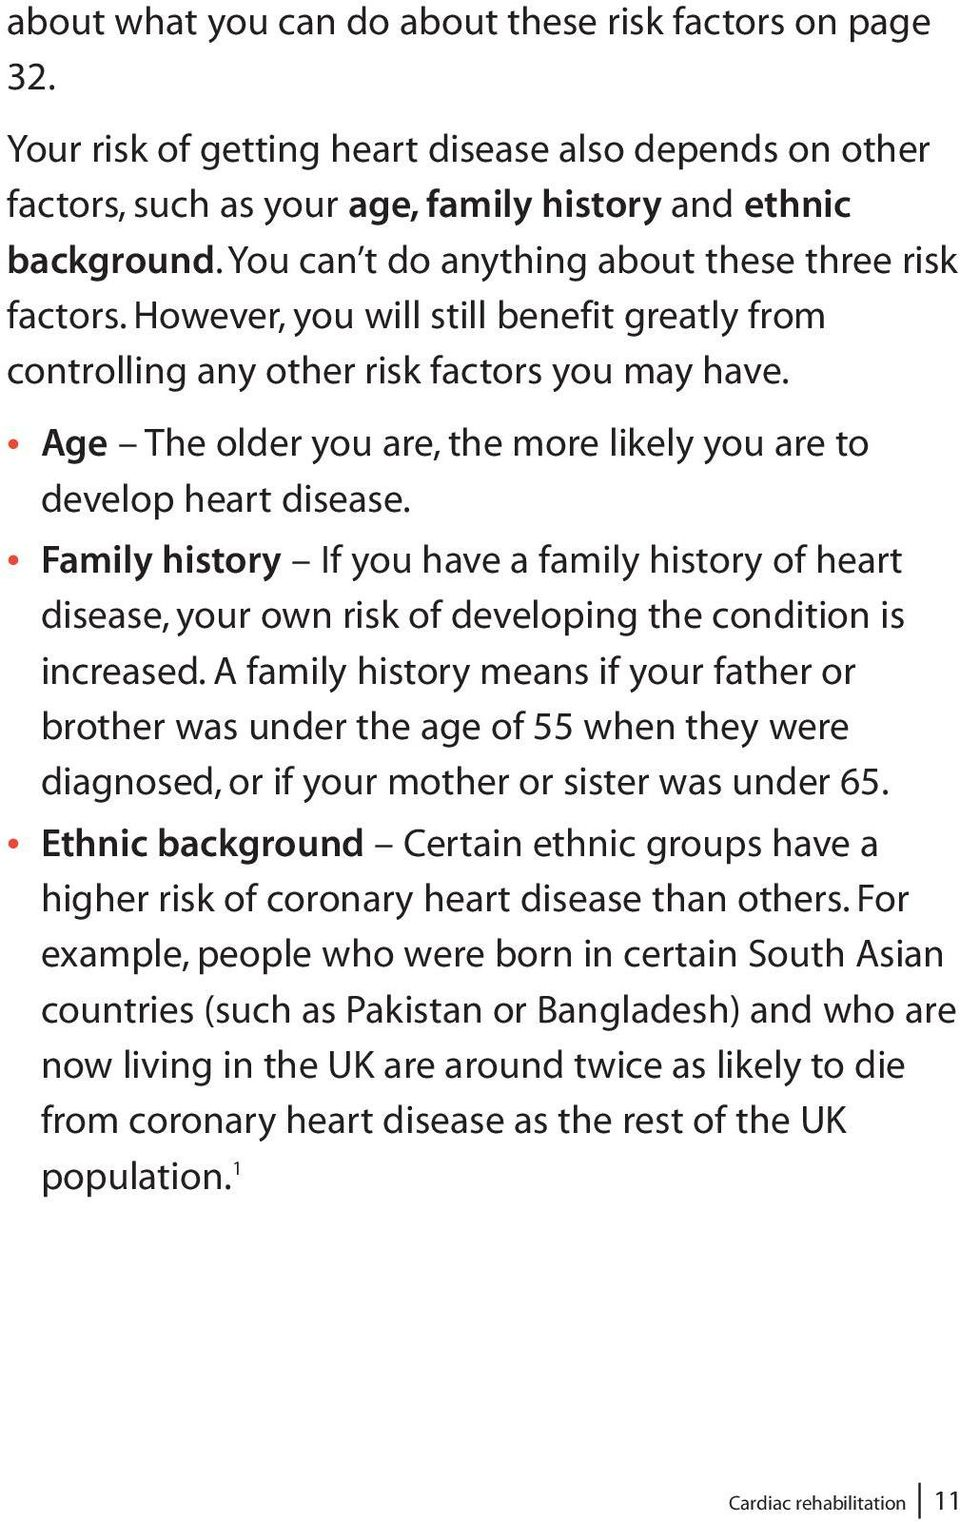 Age The older you are, the more likely you are to develop heart disease. Family history If you have a family history of heart disease, your own risk of developing the condition is increased.